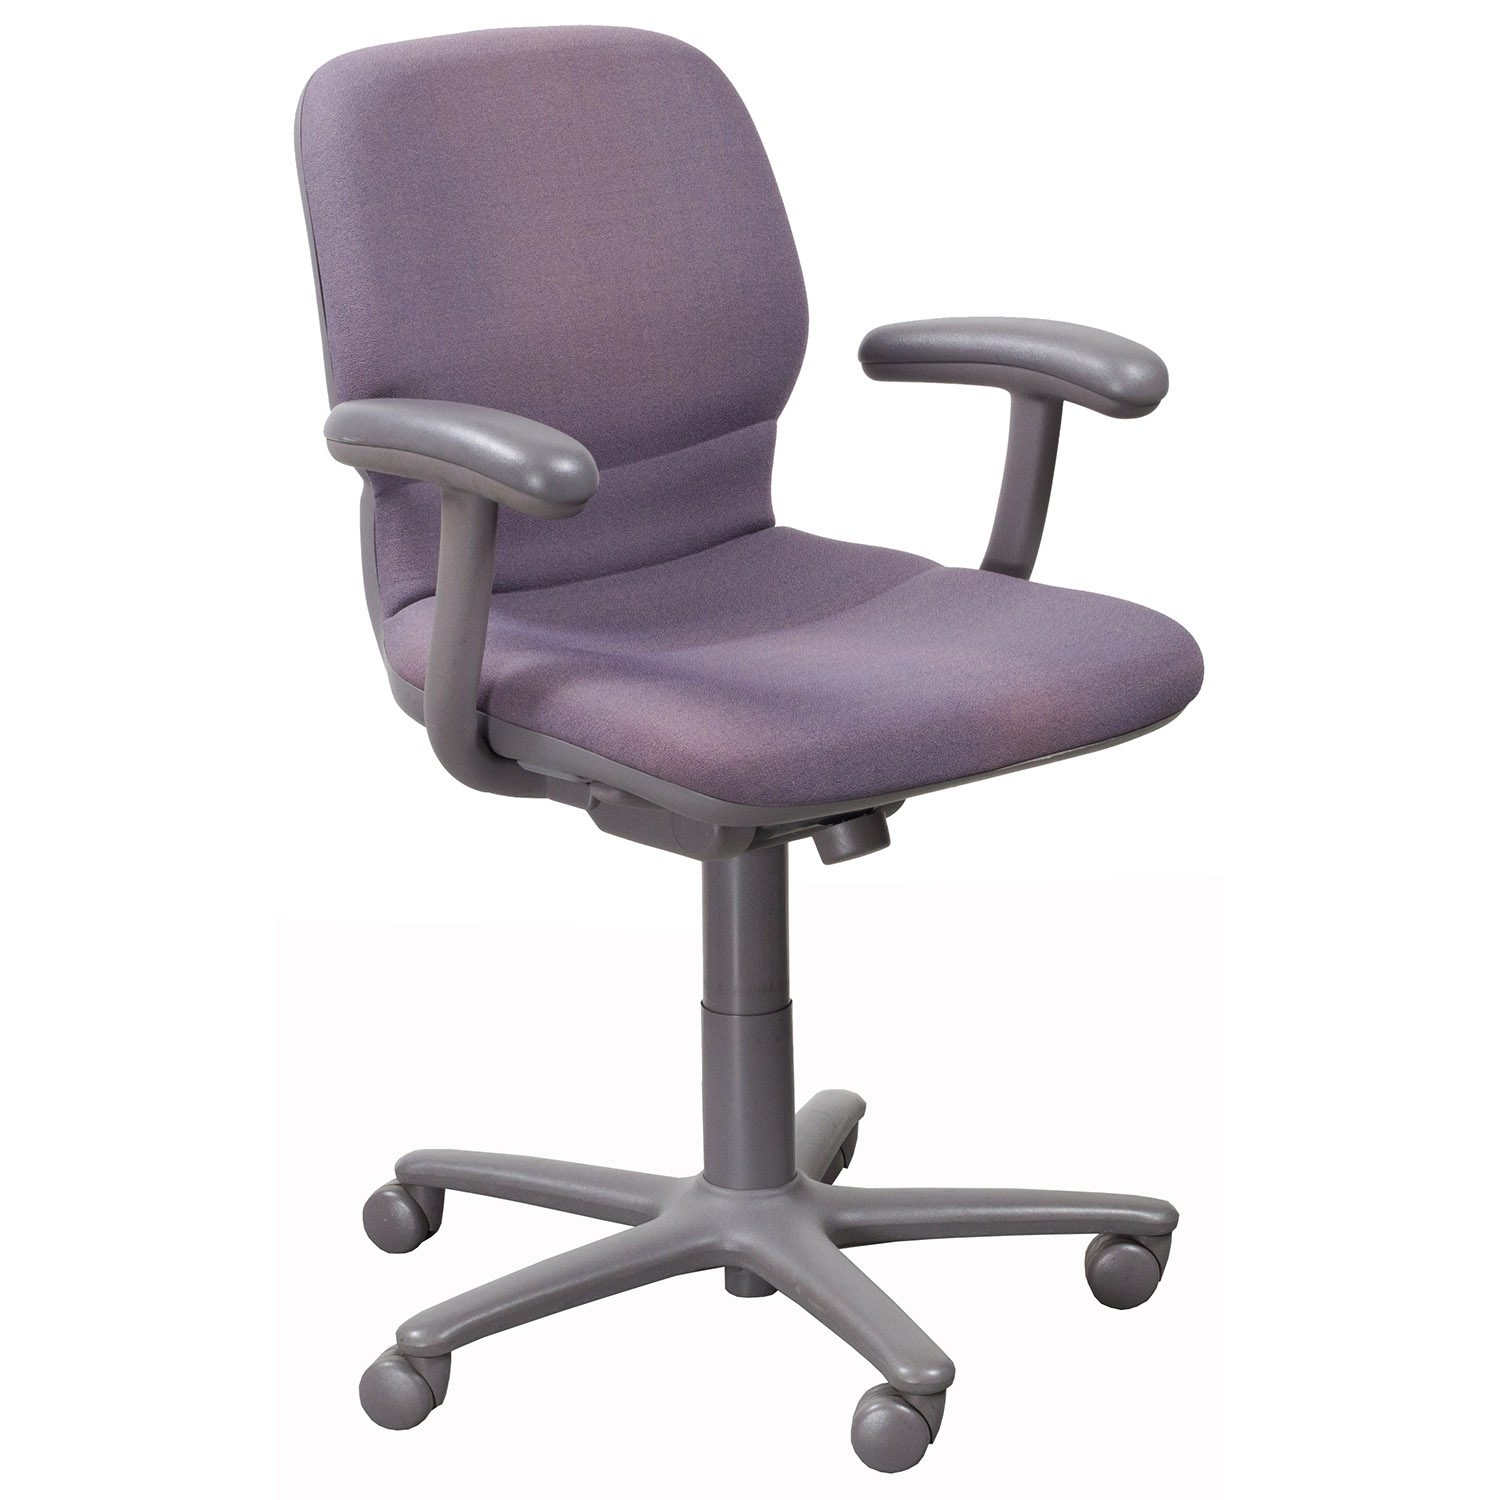 Lavender Chair Steelcase Sensor Used Task Chair Lavender National